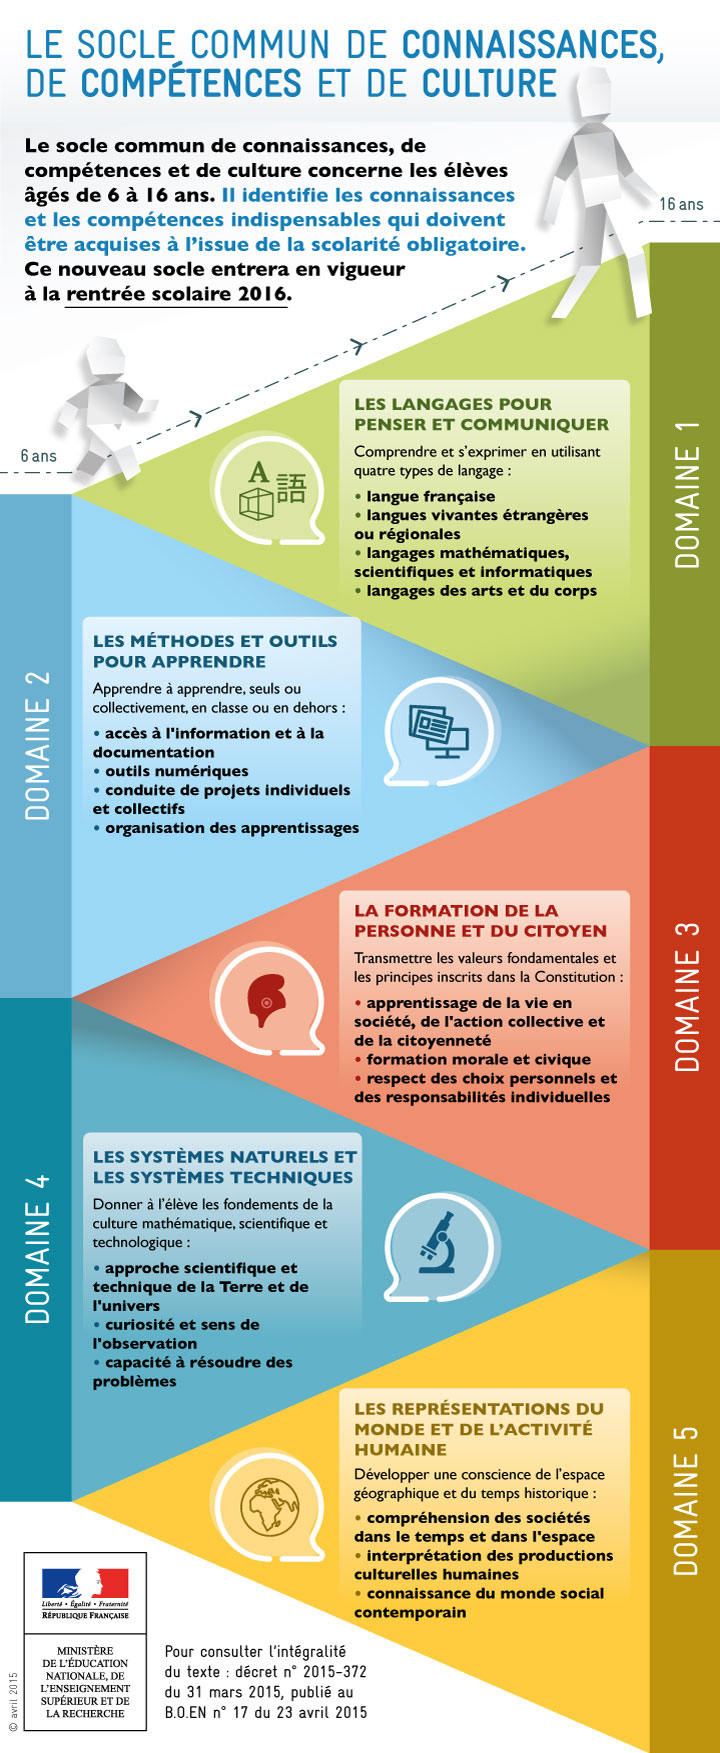 source: education.gouv.fr